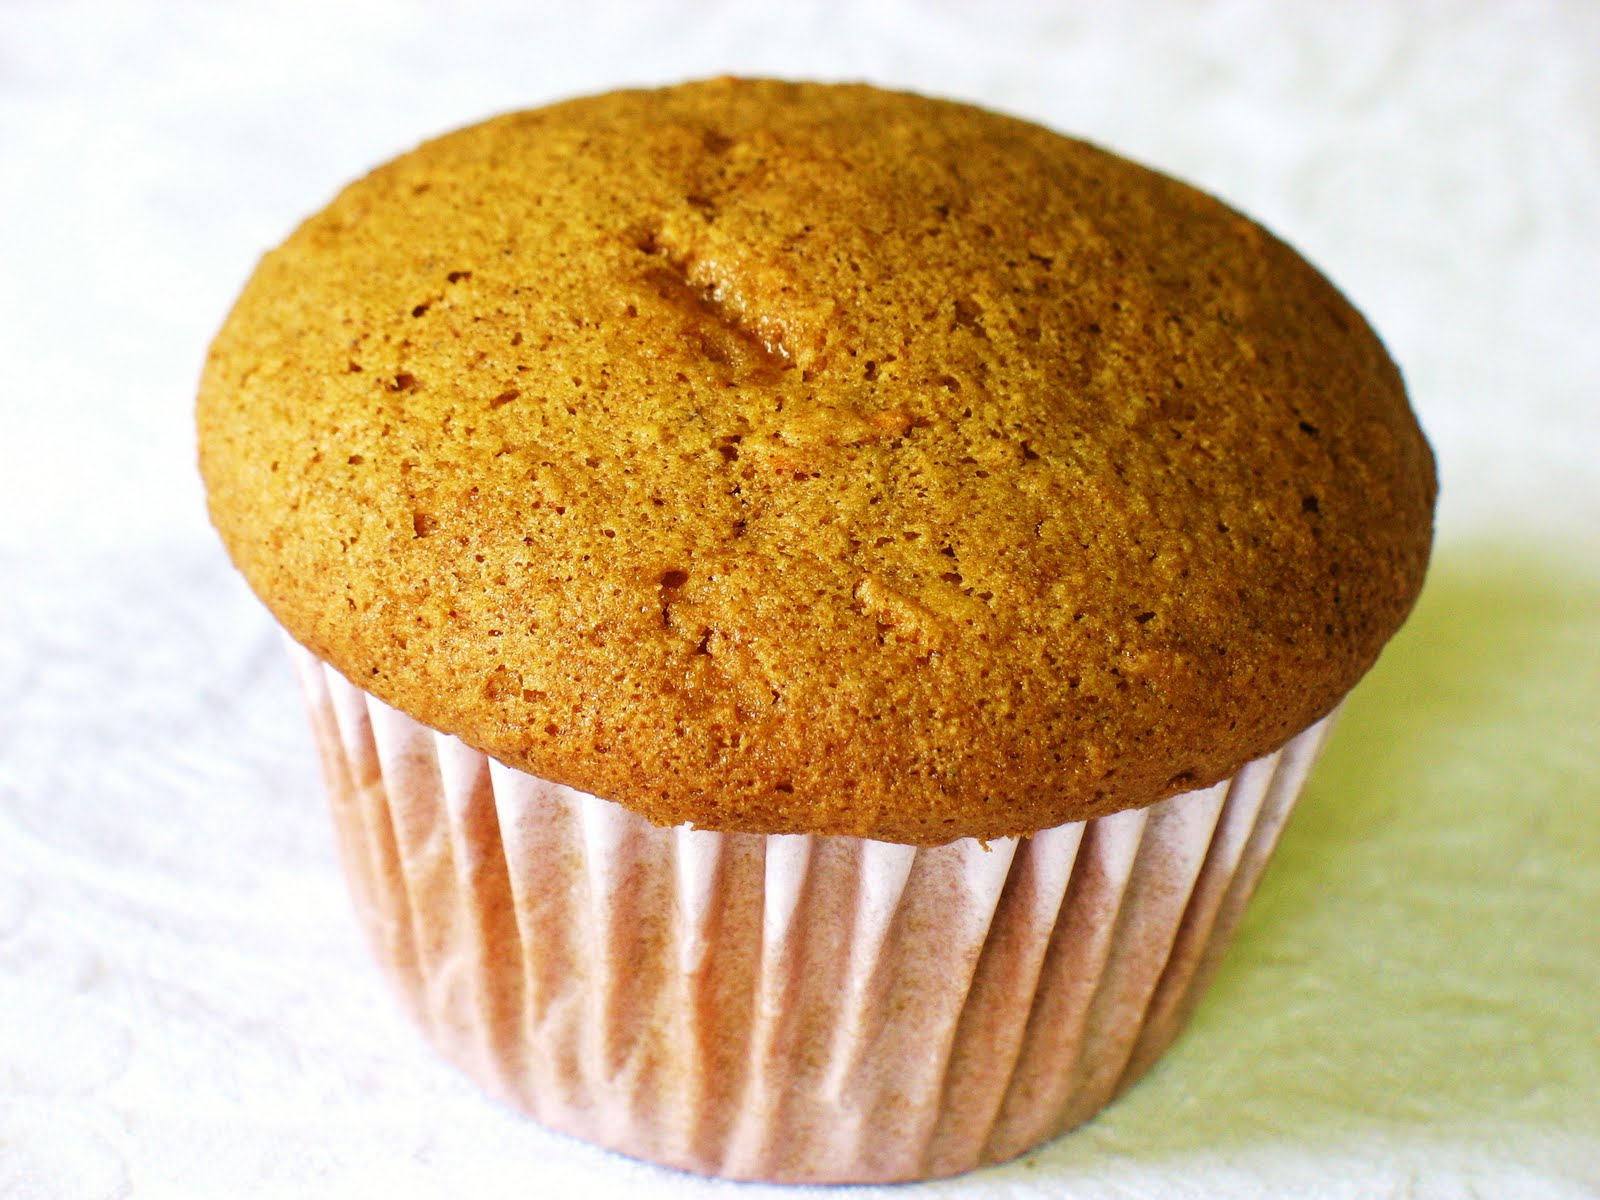 The Gluten Free Spouse: Gluten Free Carrot Cake Muffins